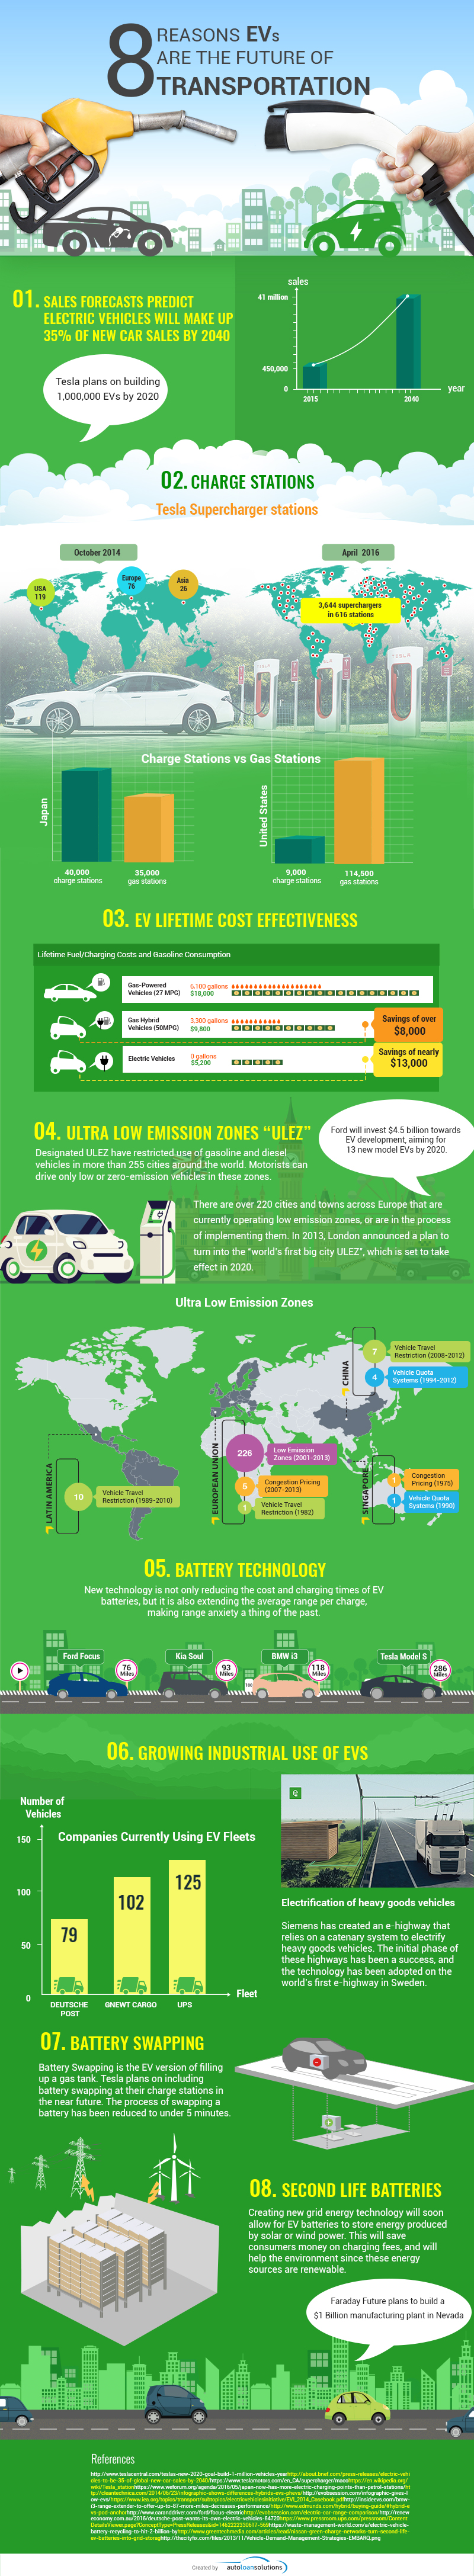 https://www.autoloansolutions.ca/electric-vehicles-are-the-future.jpg